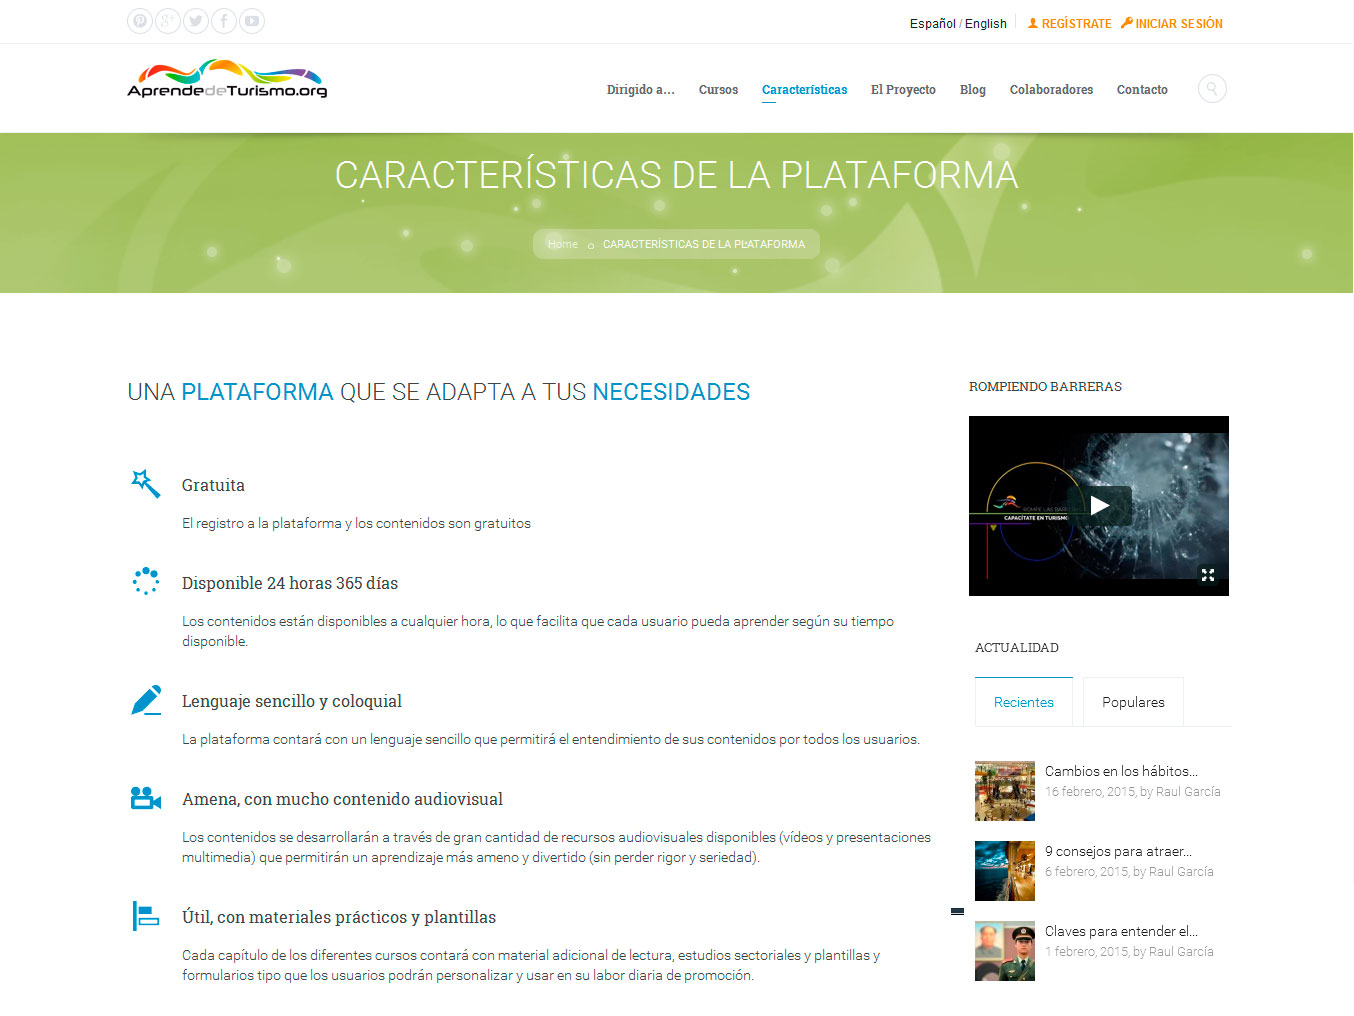 Captura Interior: Caracteristicas